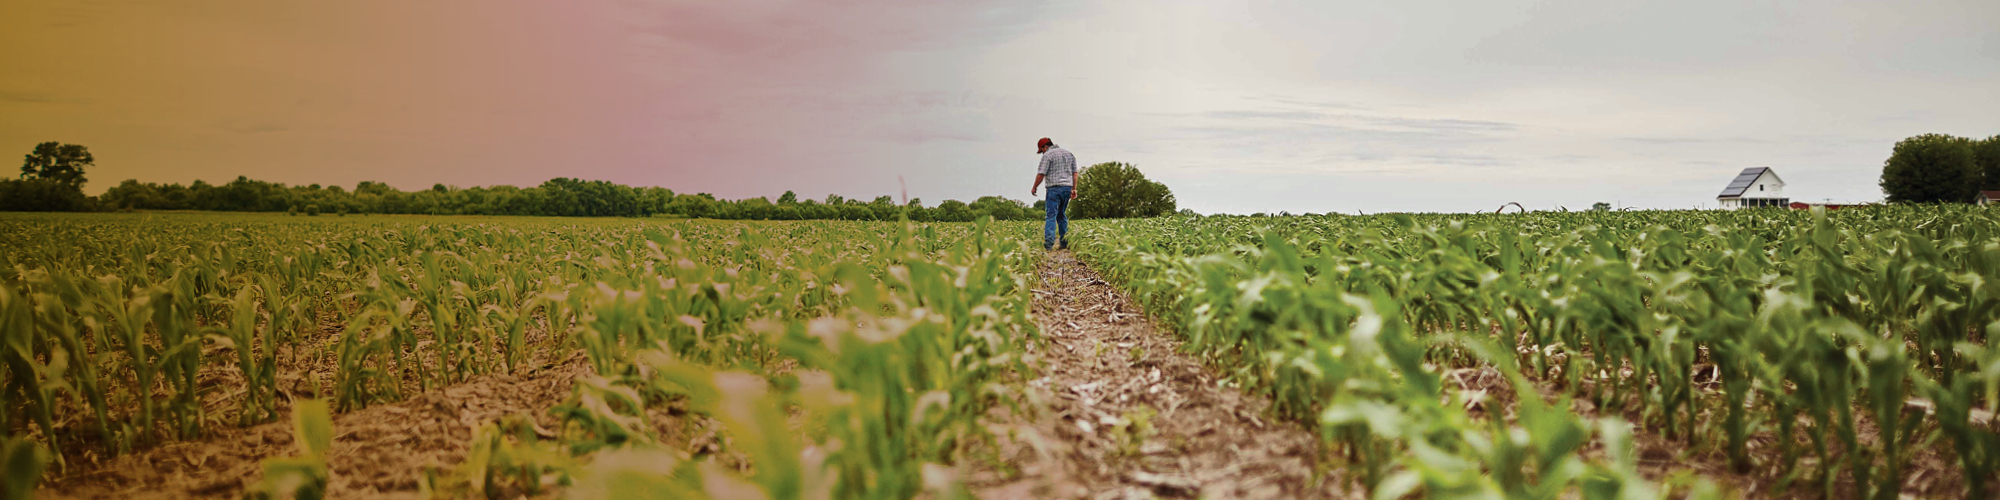 Man standing in field fo growing grops